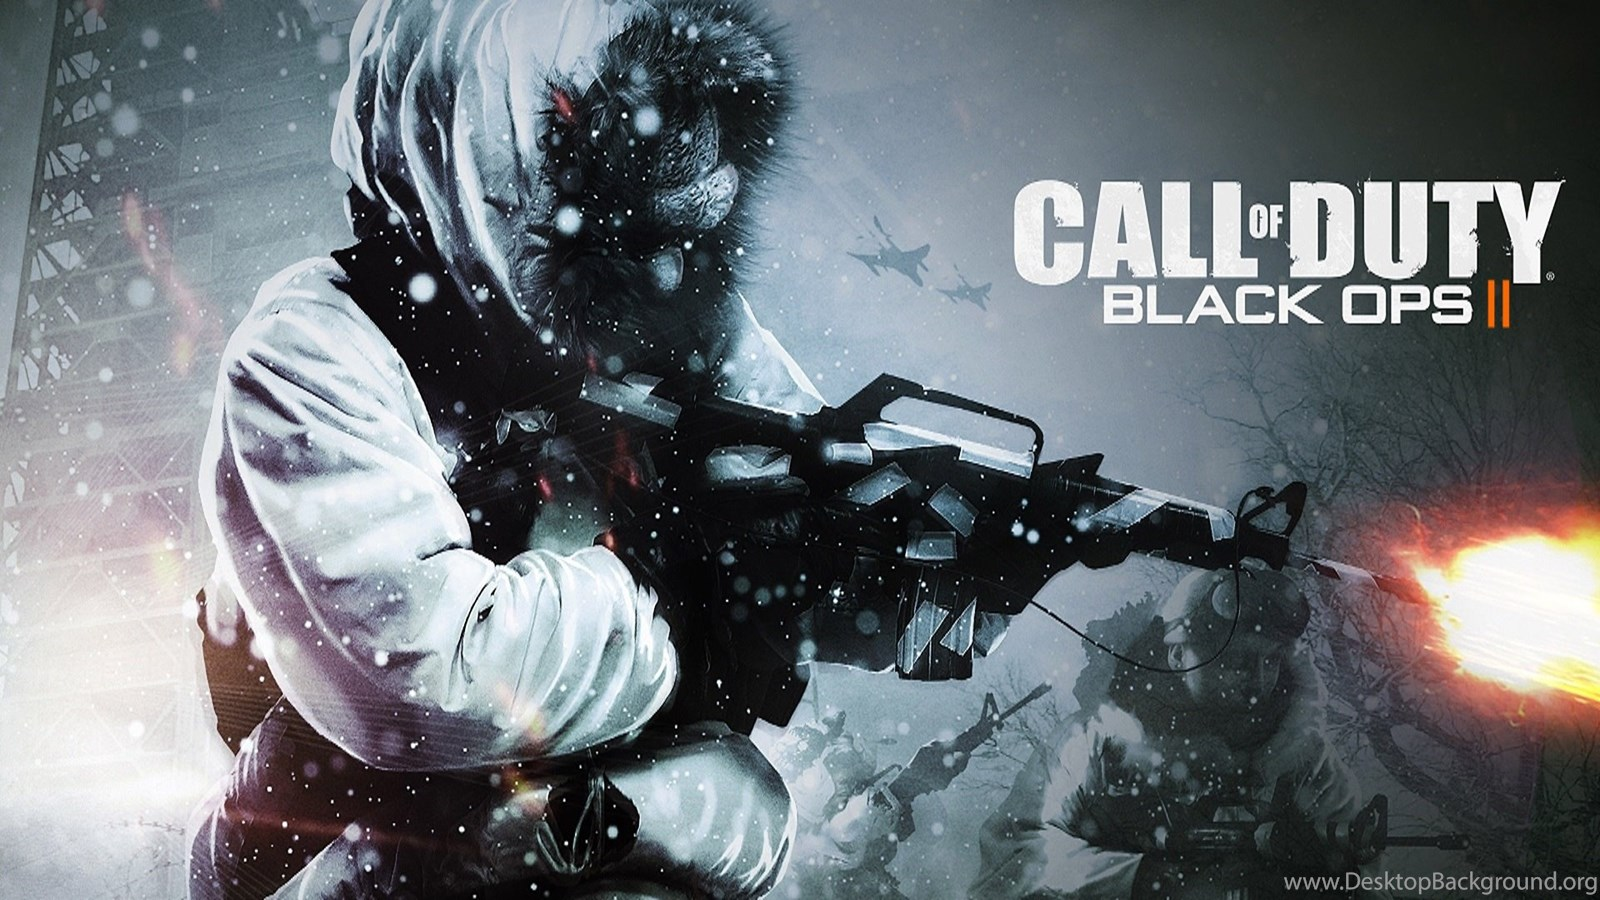 Black Ops 2 Hd Wallpapers 1080p Black Ops Ii Wallpapers Desktop